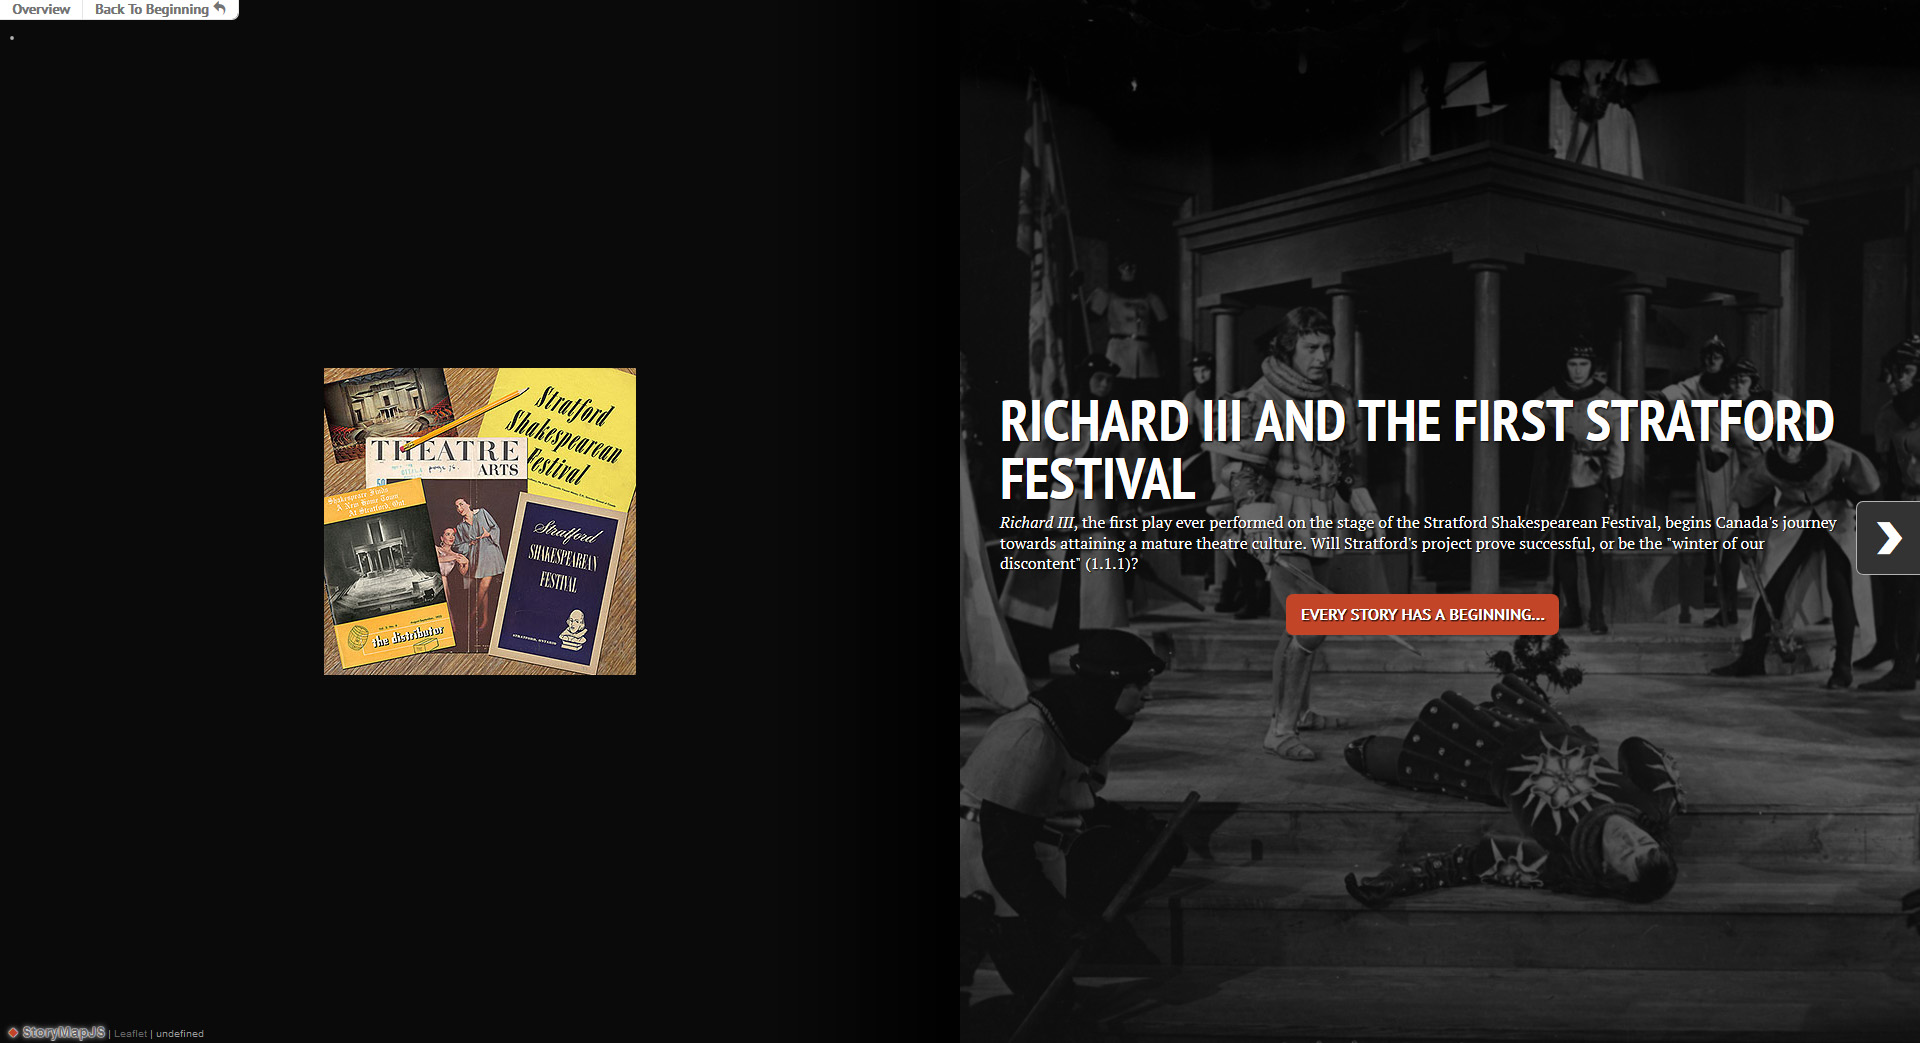 Richard III and the First Stratford Festival